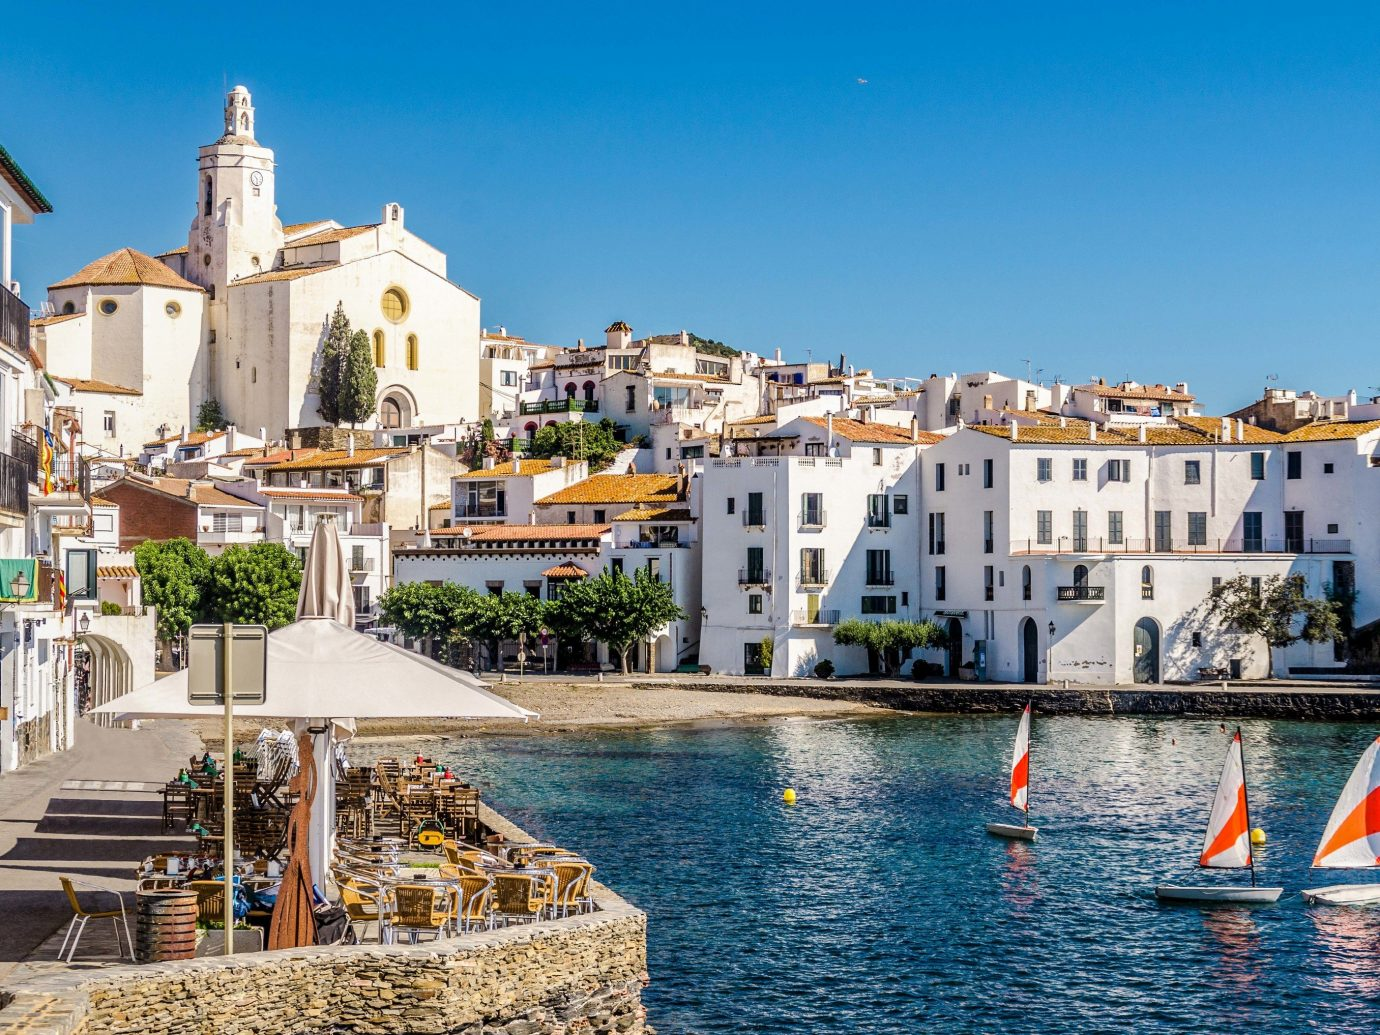 europe Outdoors + Adventure Trip Ideas waterway water Town sky City Sea tourism Harbor Boat watercraft Coast vacation building marina Canal